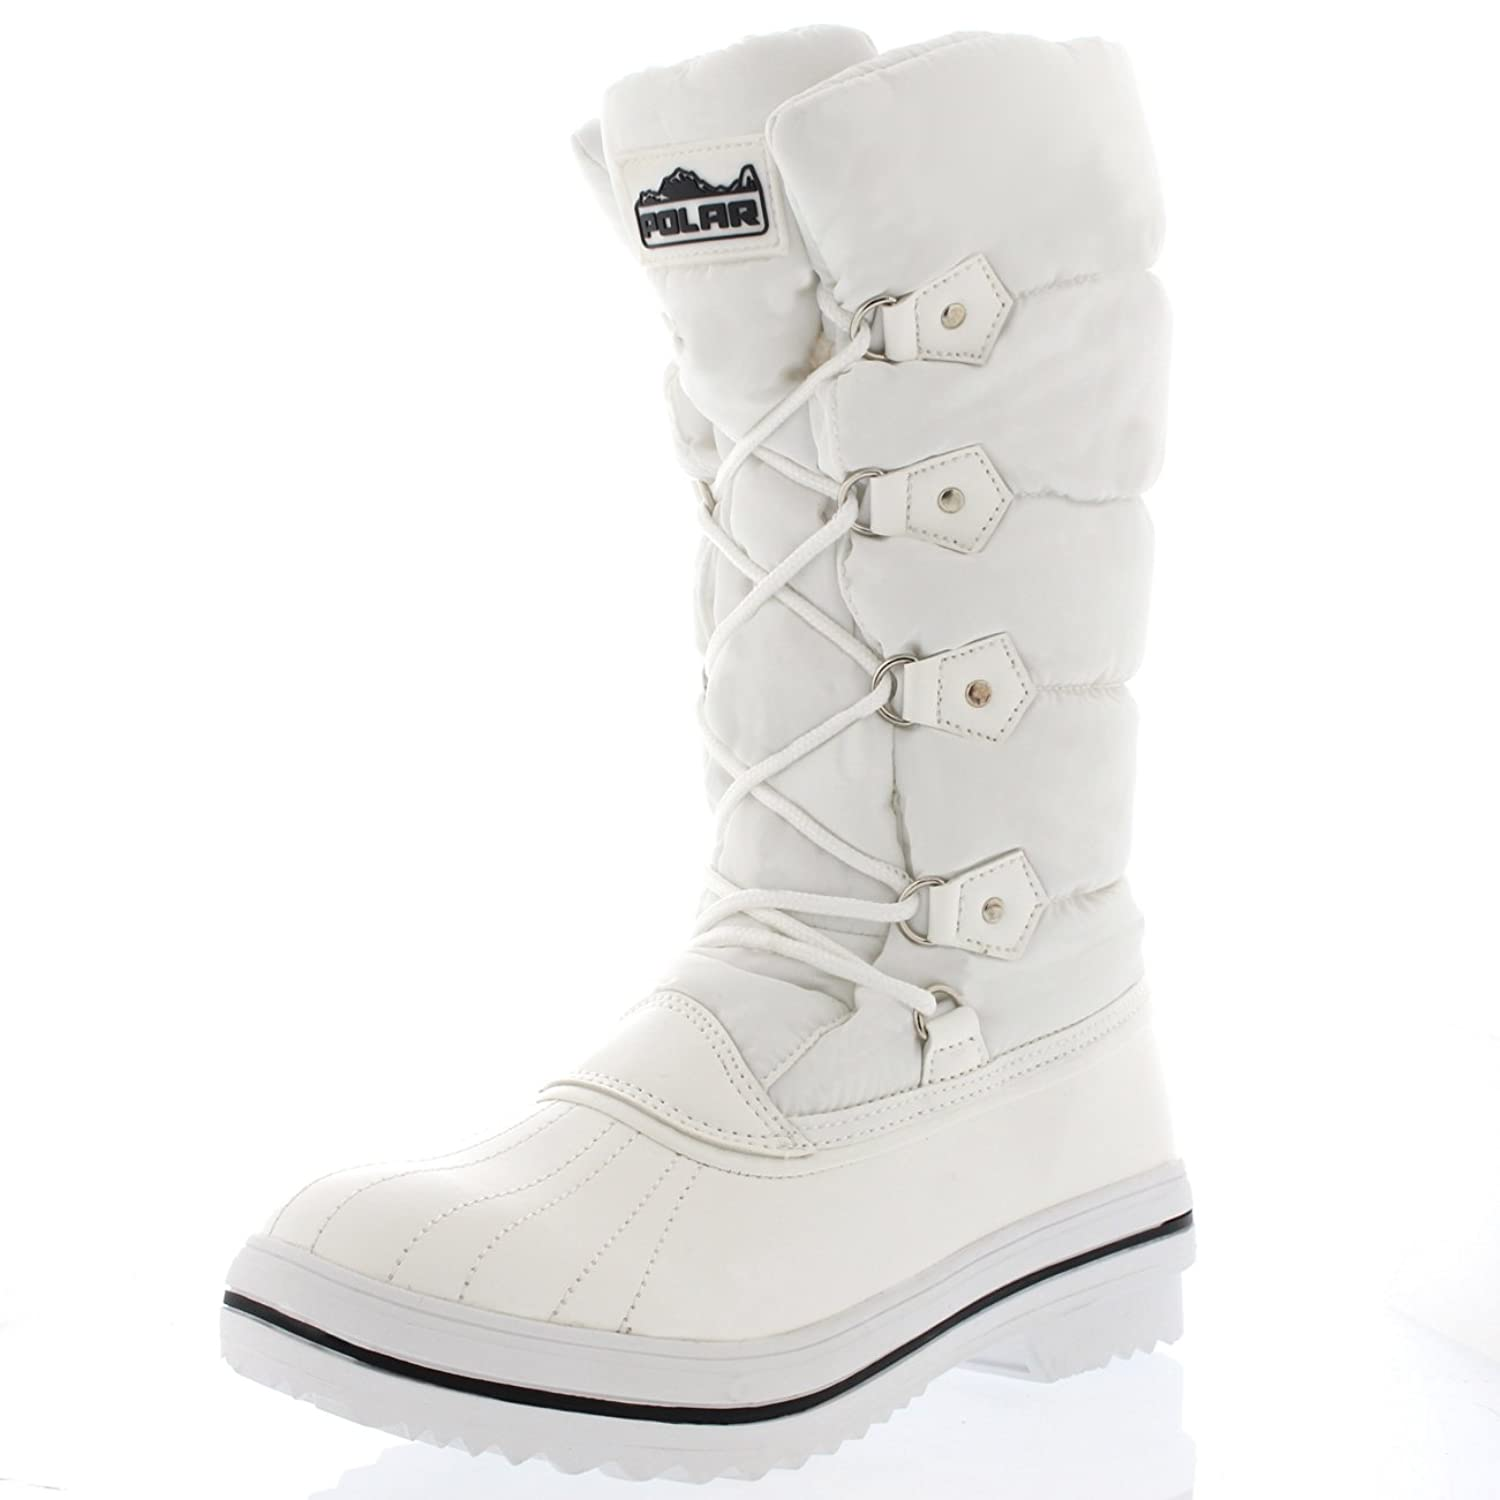 Womens Nylon Fur Lined Rubber Sole Winter Puff Quilted Water Proof Snow Rain Boots